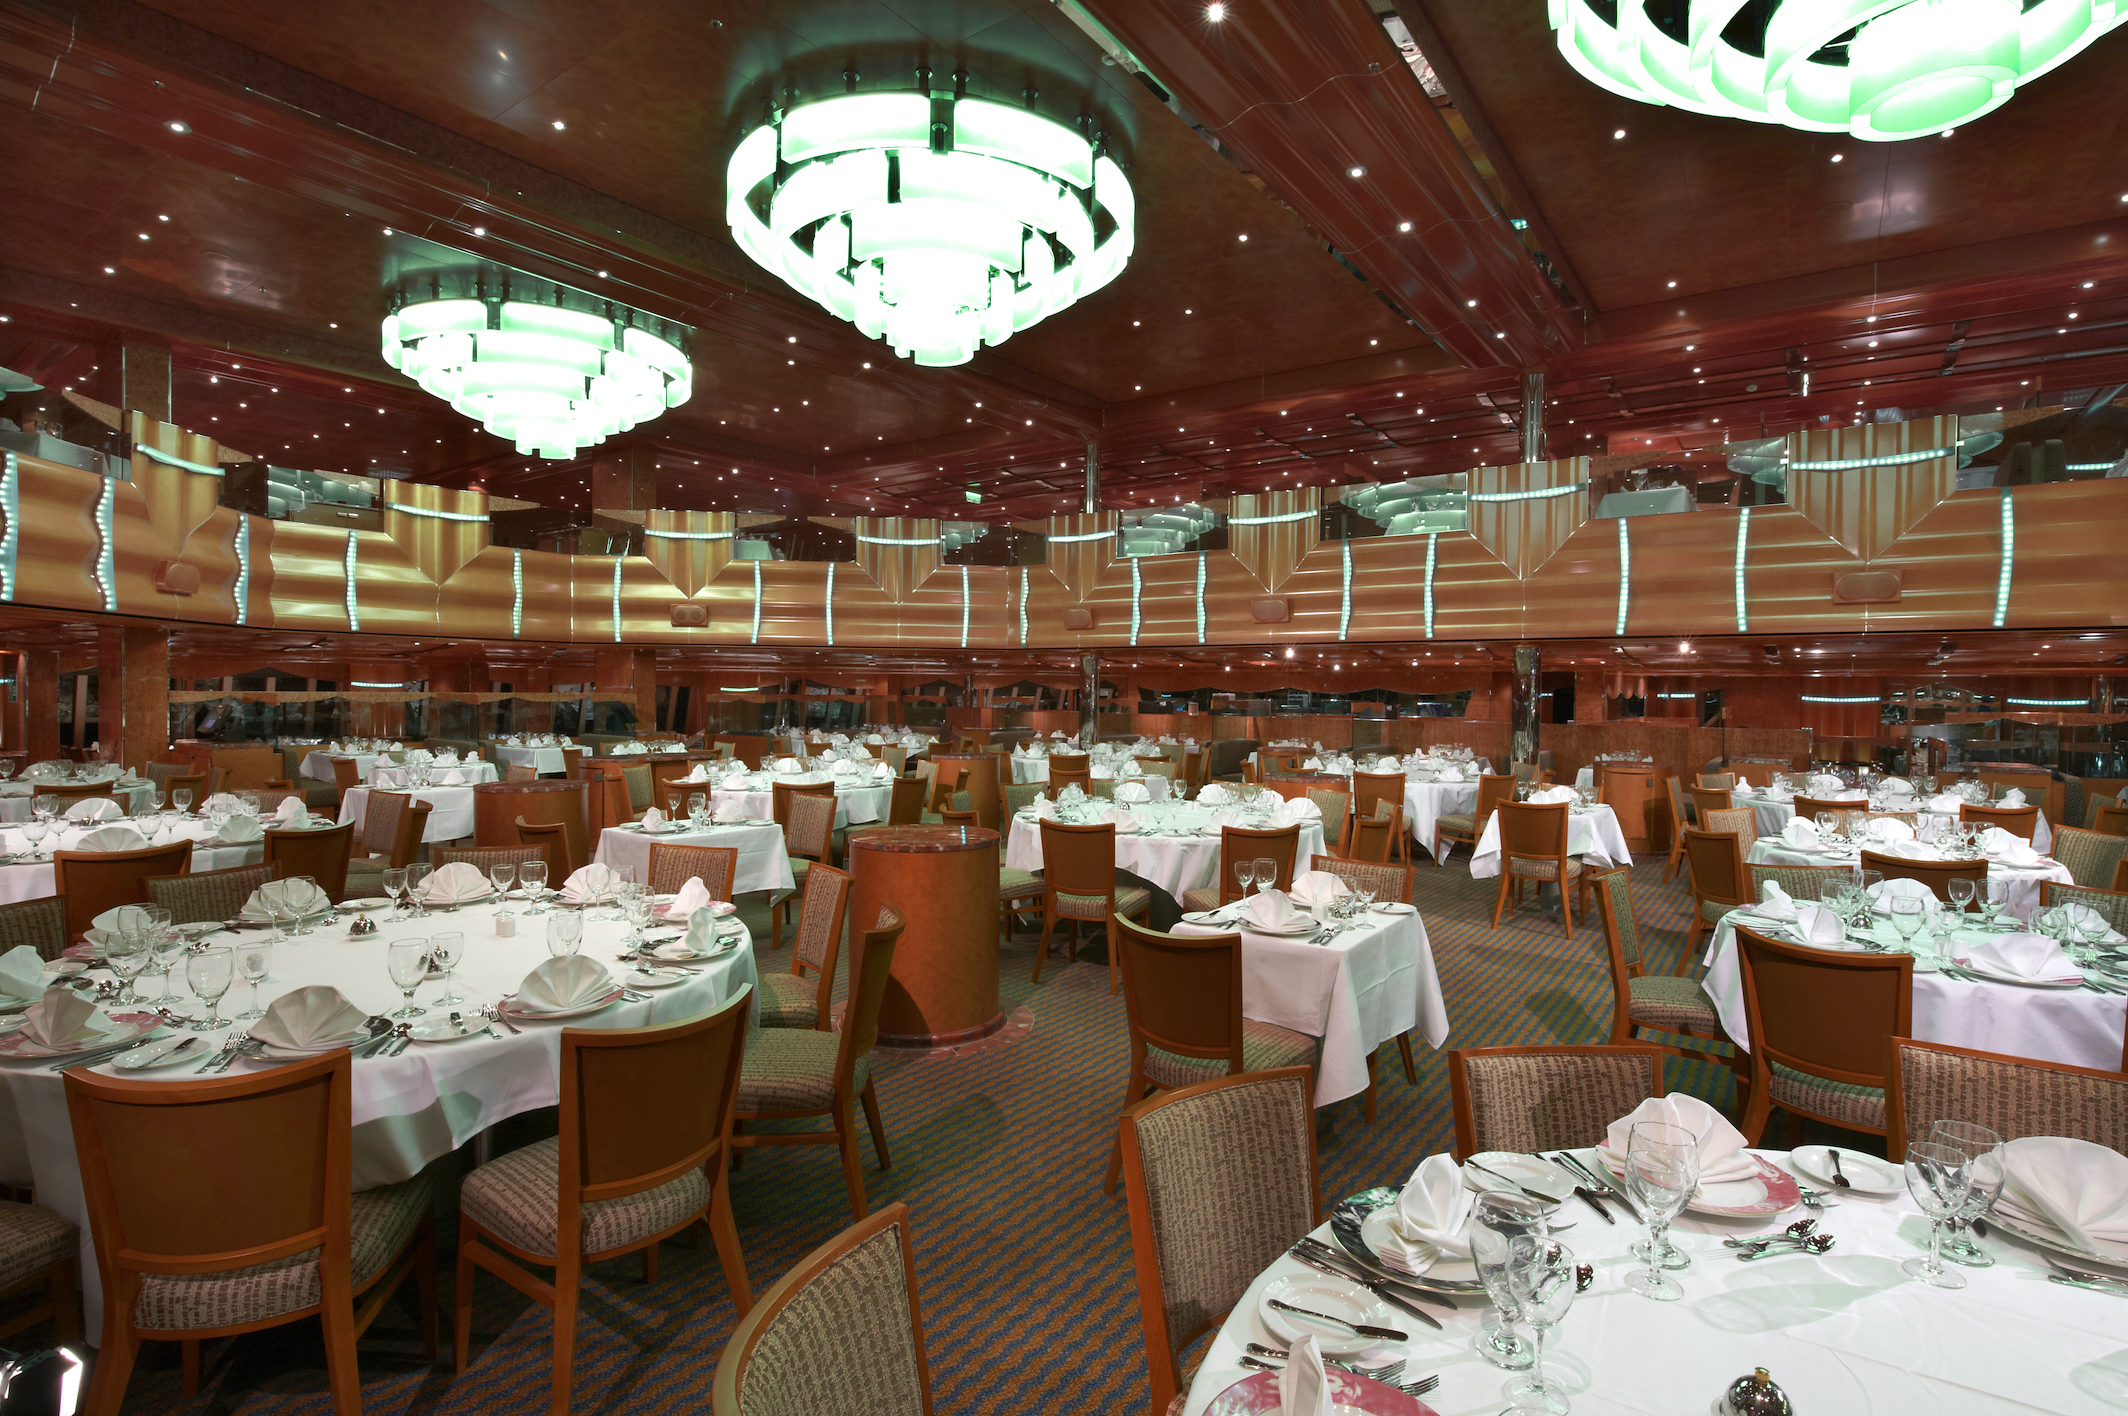 Carnival Magic Southern Lights Restaurant 1.jpg